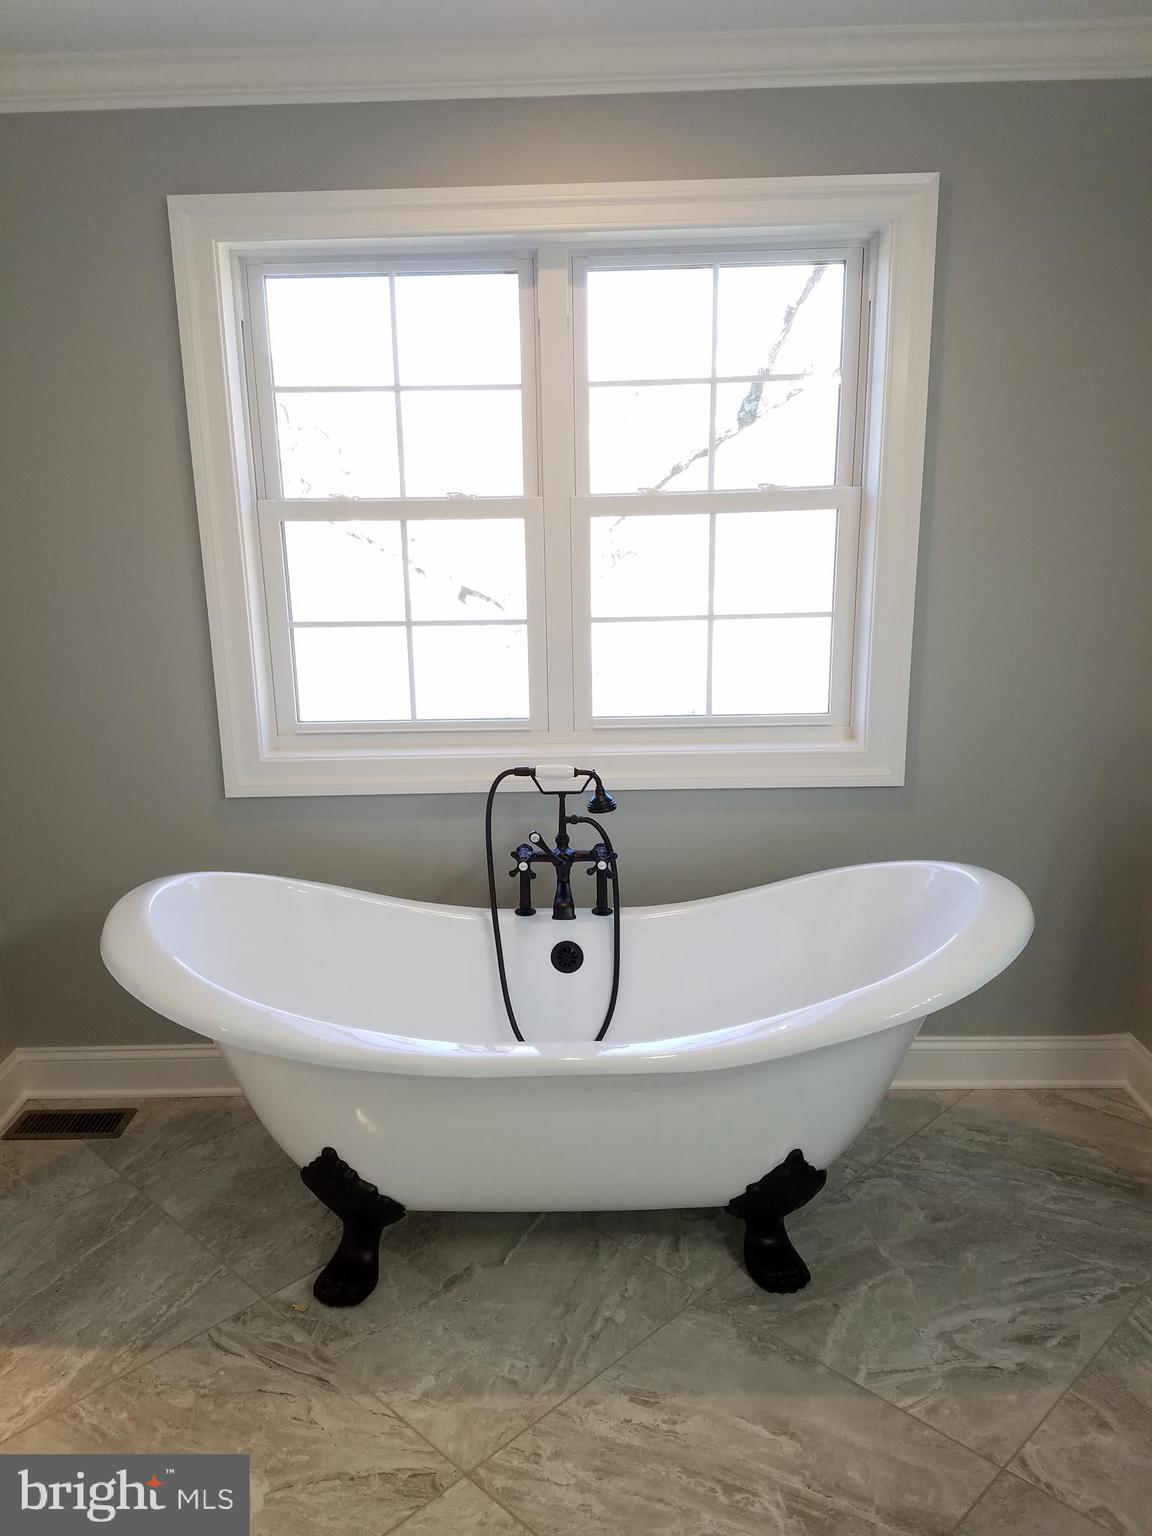 Claw foot soaking tub w/ ORB faucet.